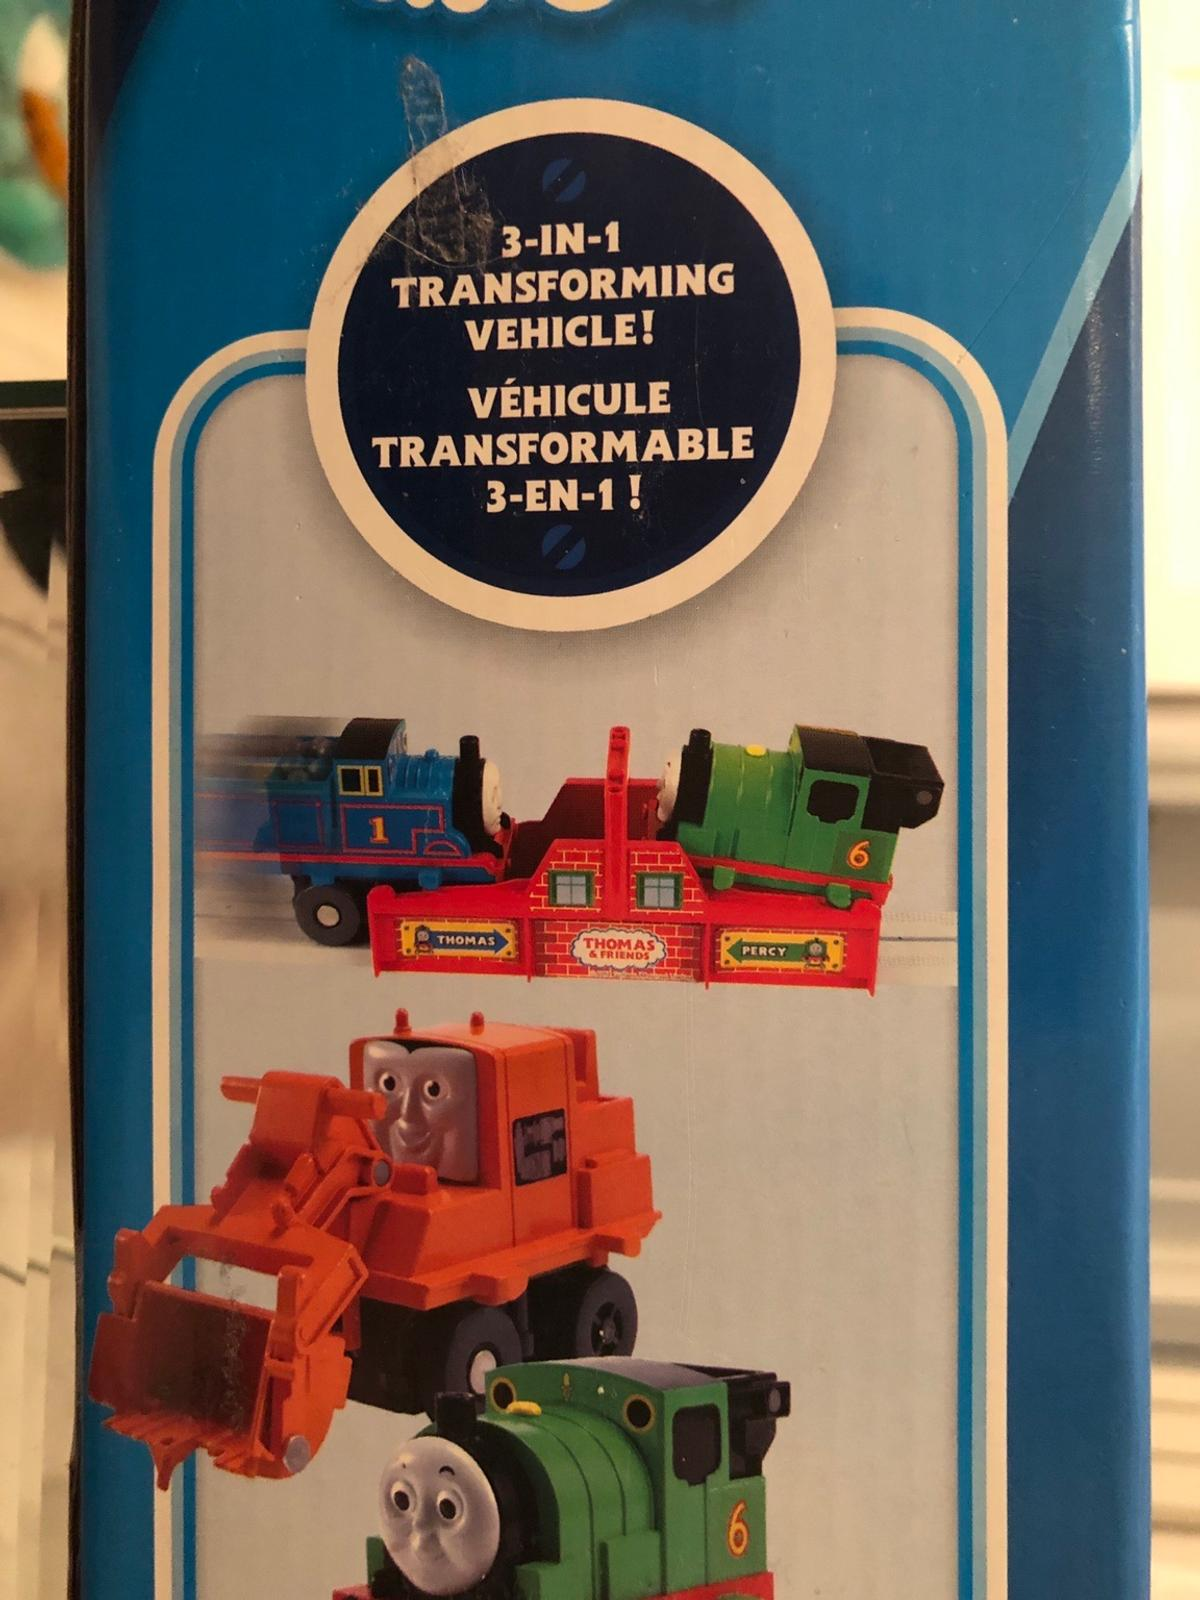 Thomas & Friends Big Loader. Only played with a couple of times. Brand new really. Excellent condition. All put back in original box with instructions. Age 3+. Buyer to collect from Bexley.